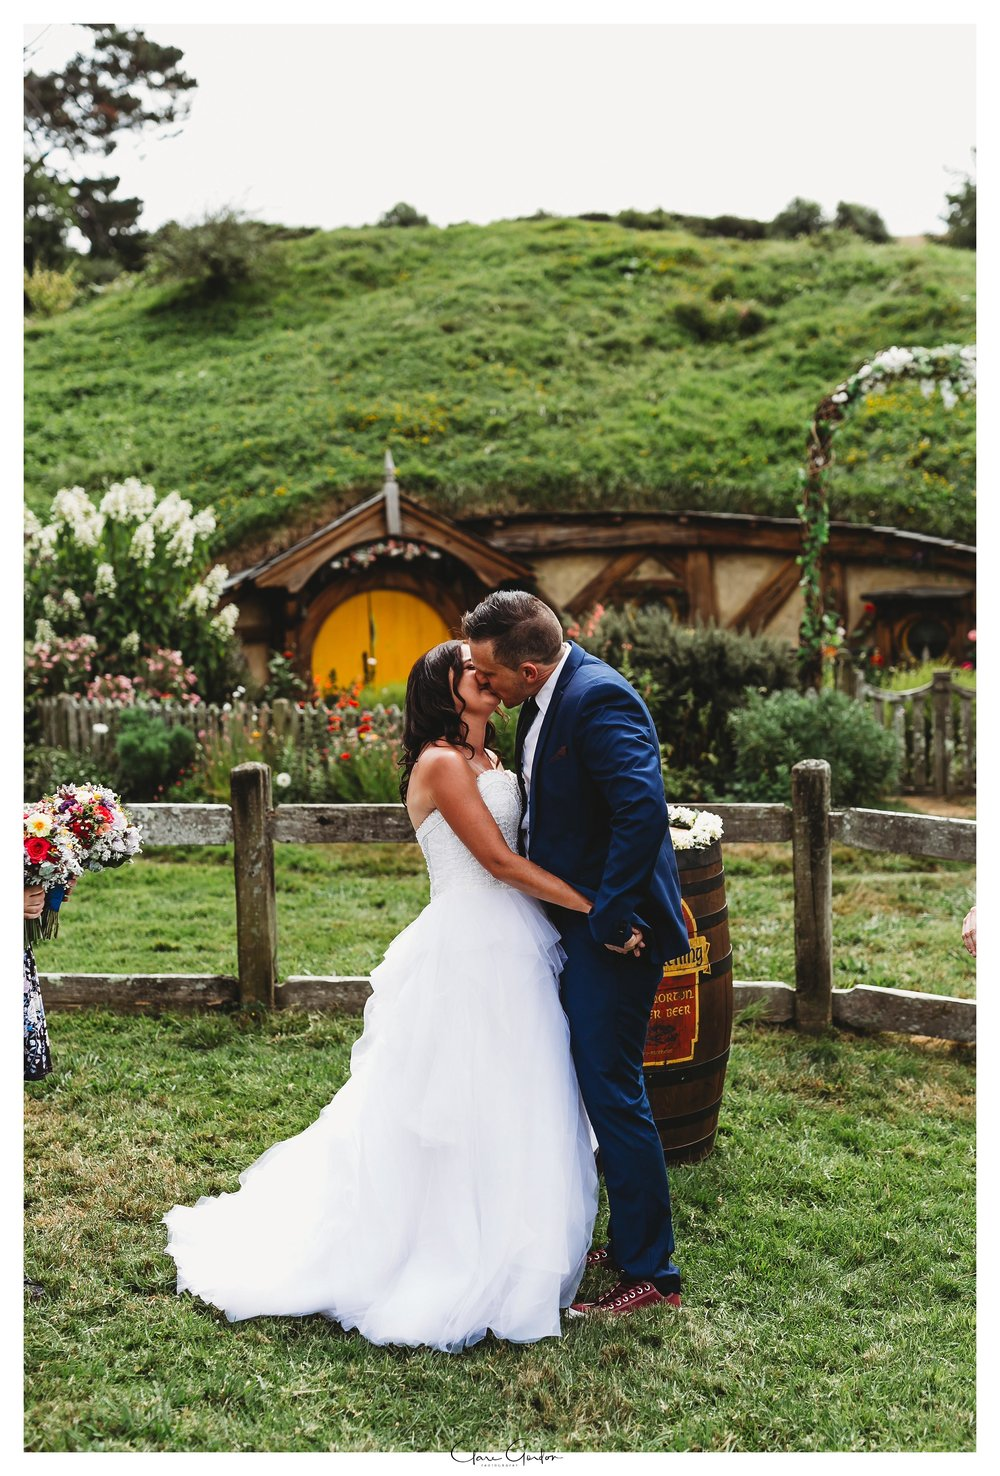 Hobbiton-wedding-bride-and-groom-kiss